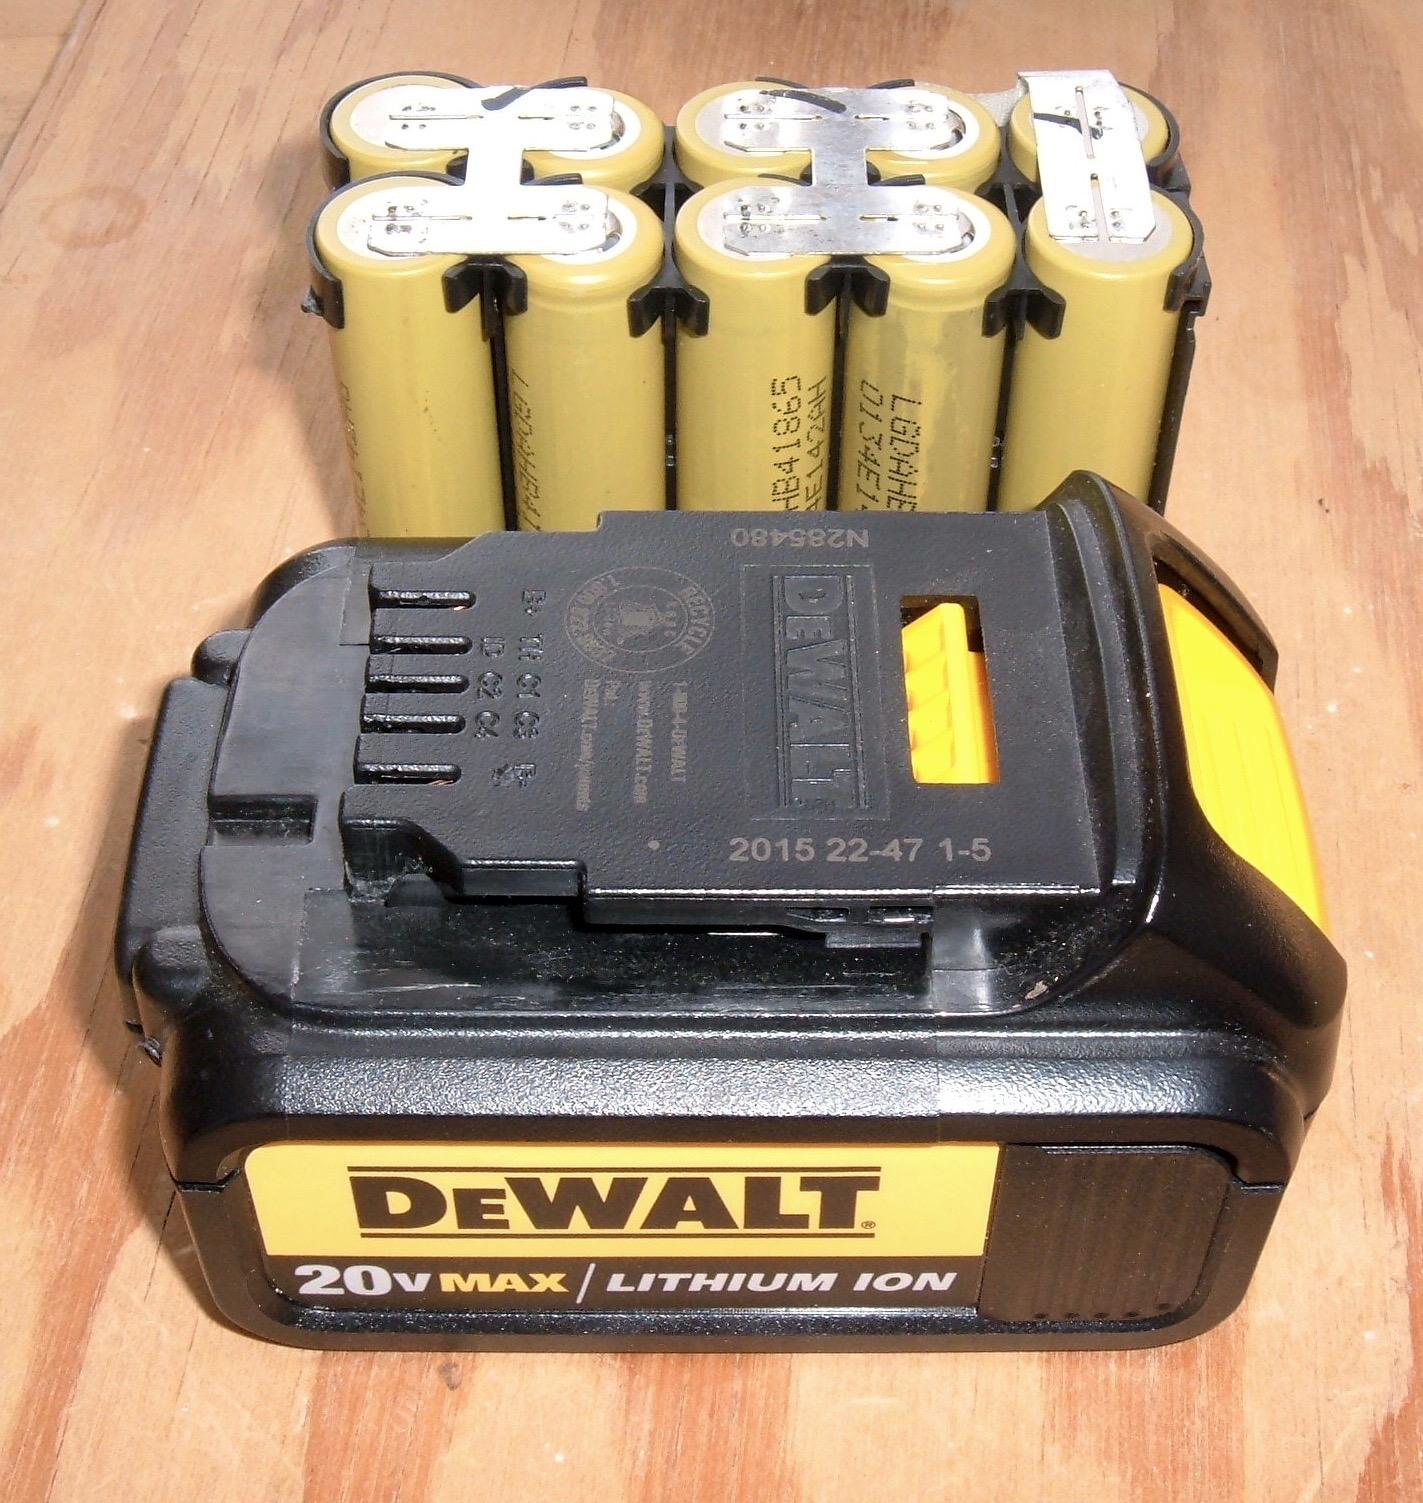 Syonyks Project Blog Dewalt 20v Max 30ah Battery Pack Teardown Common Symbols Include A Cell Switches Meters Power But From An End User Perspective This Is Incredibly Nice Tool Its Solidly Built Using Great Cells And Capable Of Handling Ton